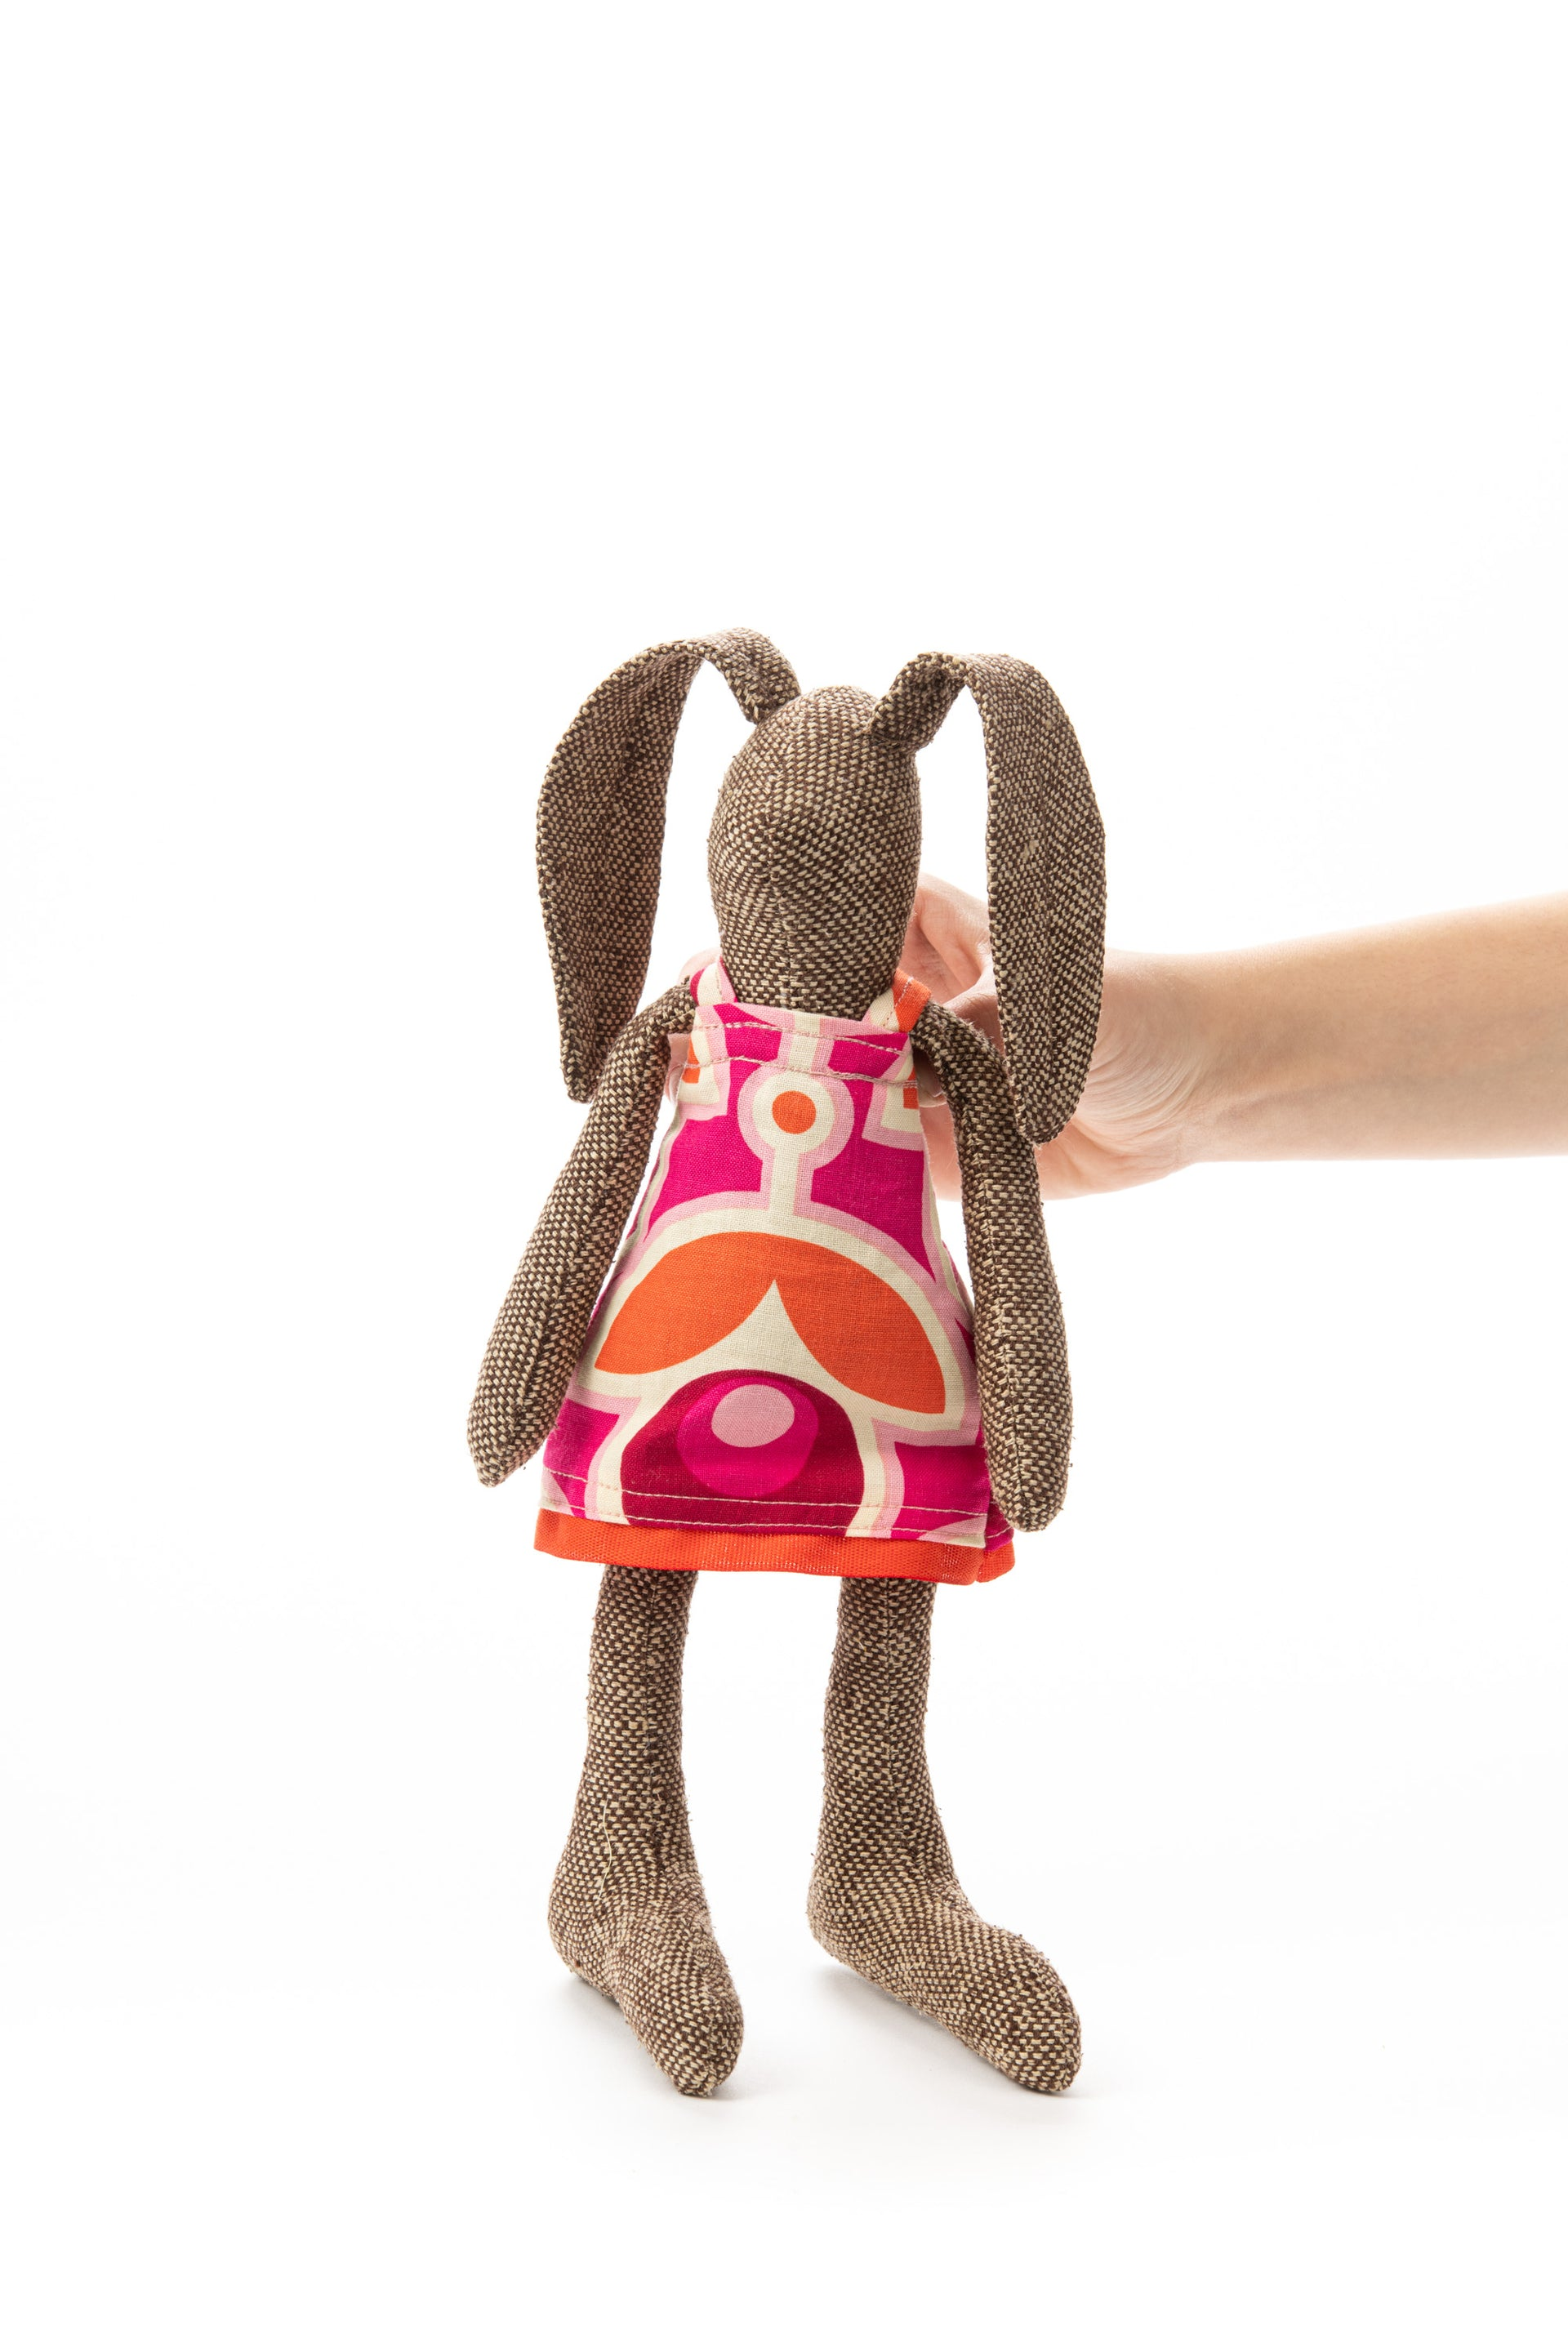 Girl nursery décor, Stocking stuffer, Eco toy doll, Handmade bunny, Girls birthday gift, Rabbit doll, Fabric doll, Dark doll, Stuffed doll